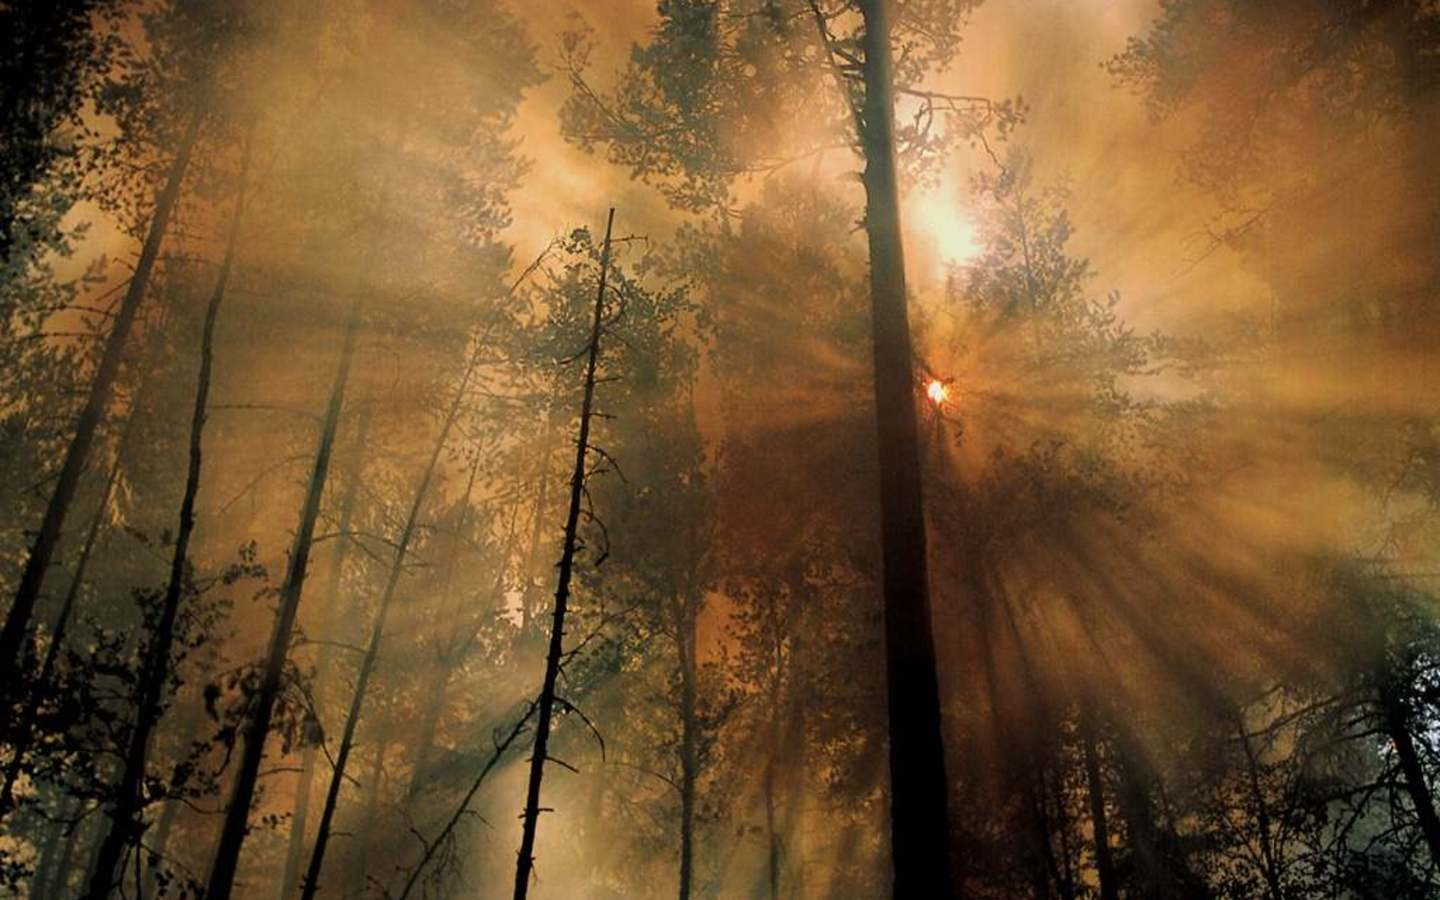 http://media1.wgz.ro/images/media1:4bffc91a76f24.jpg/_nature_Forest_Fire_the_Morning_After.jpg